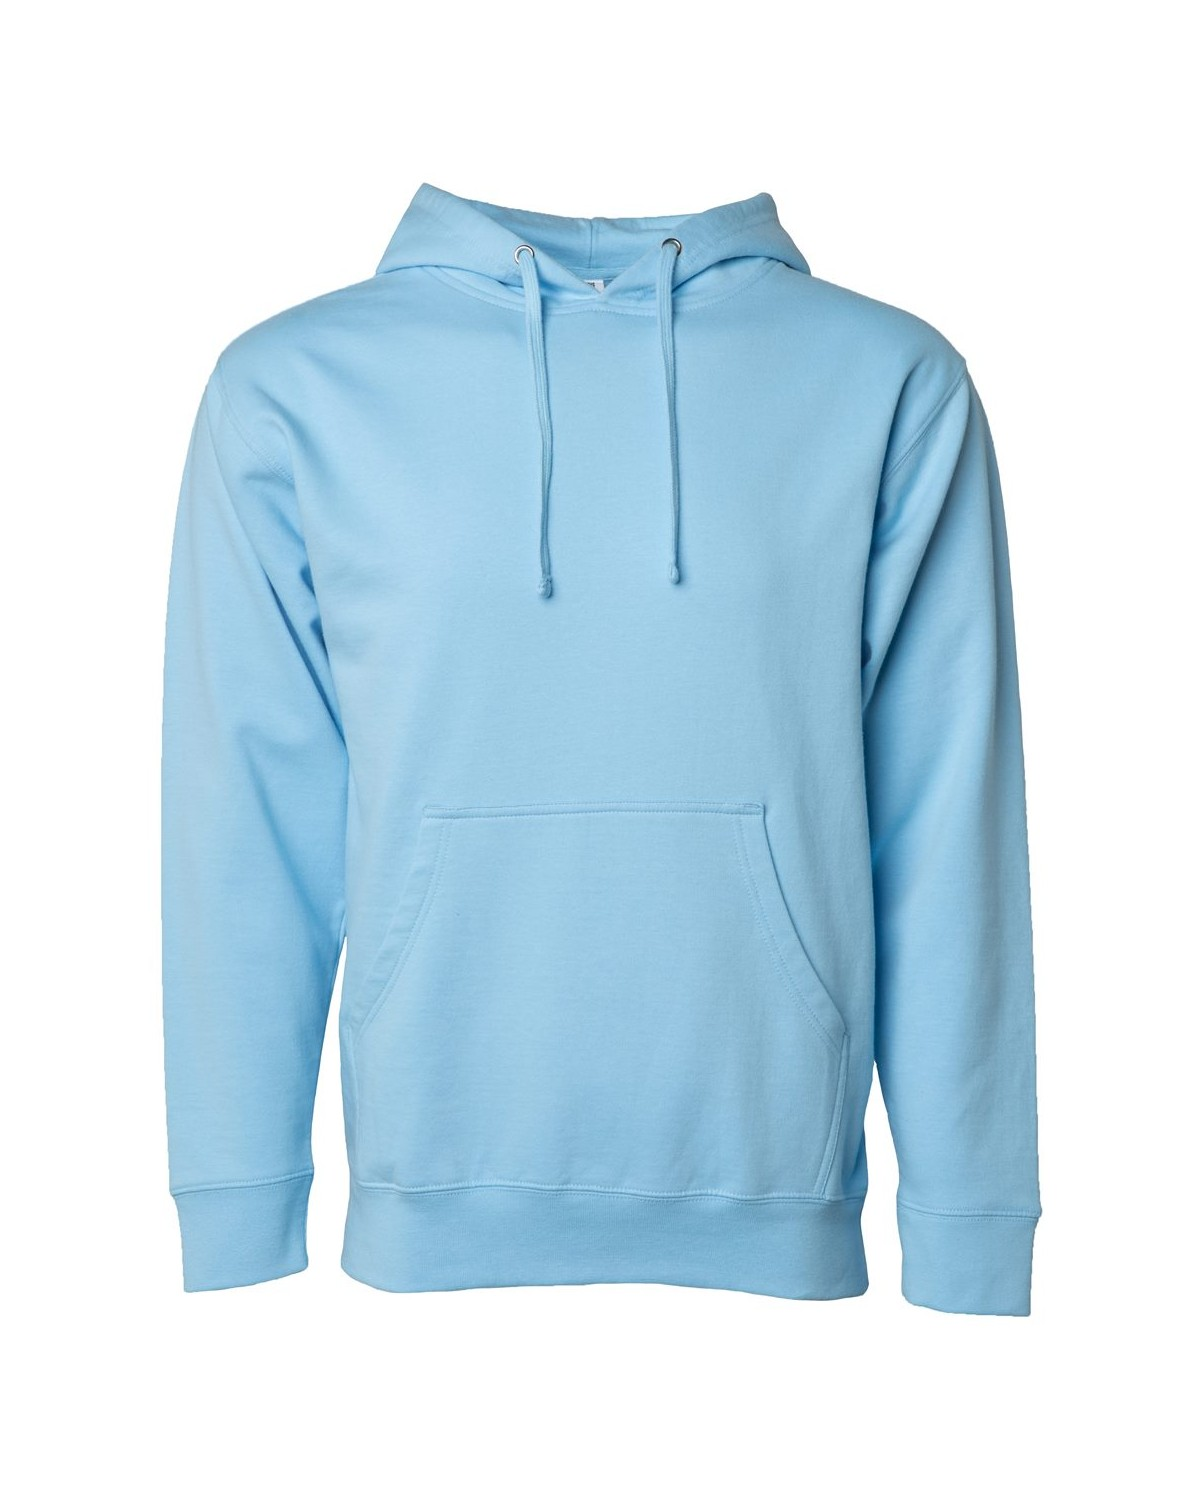 SS4500 Independent Trading Co. Blue Aqua